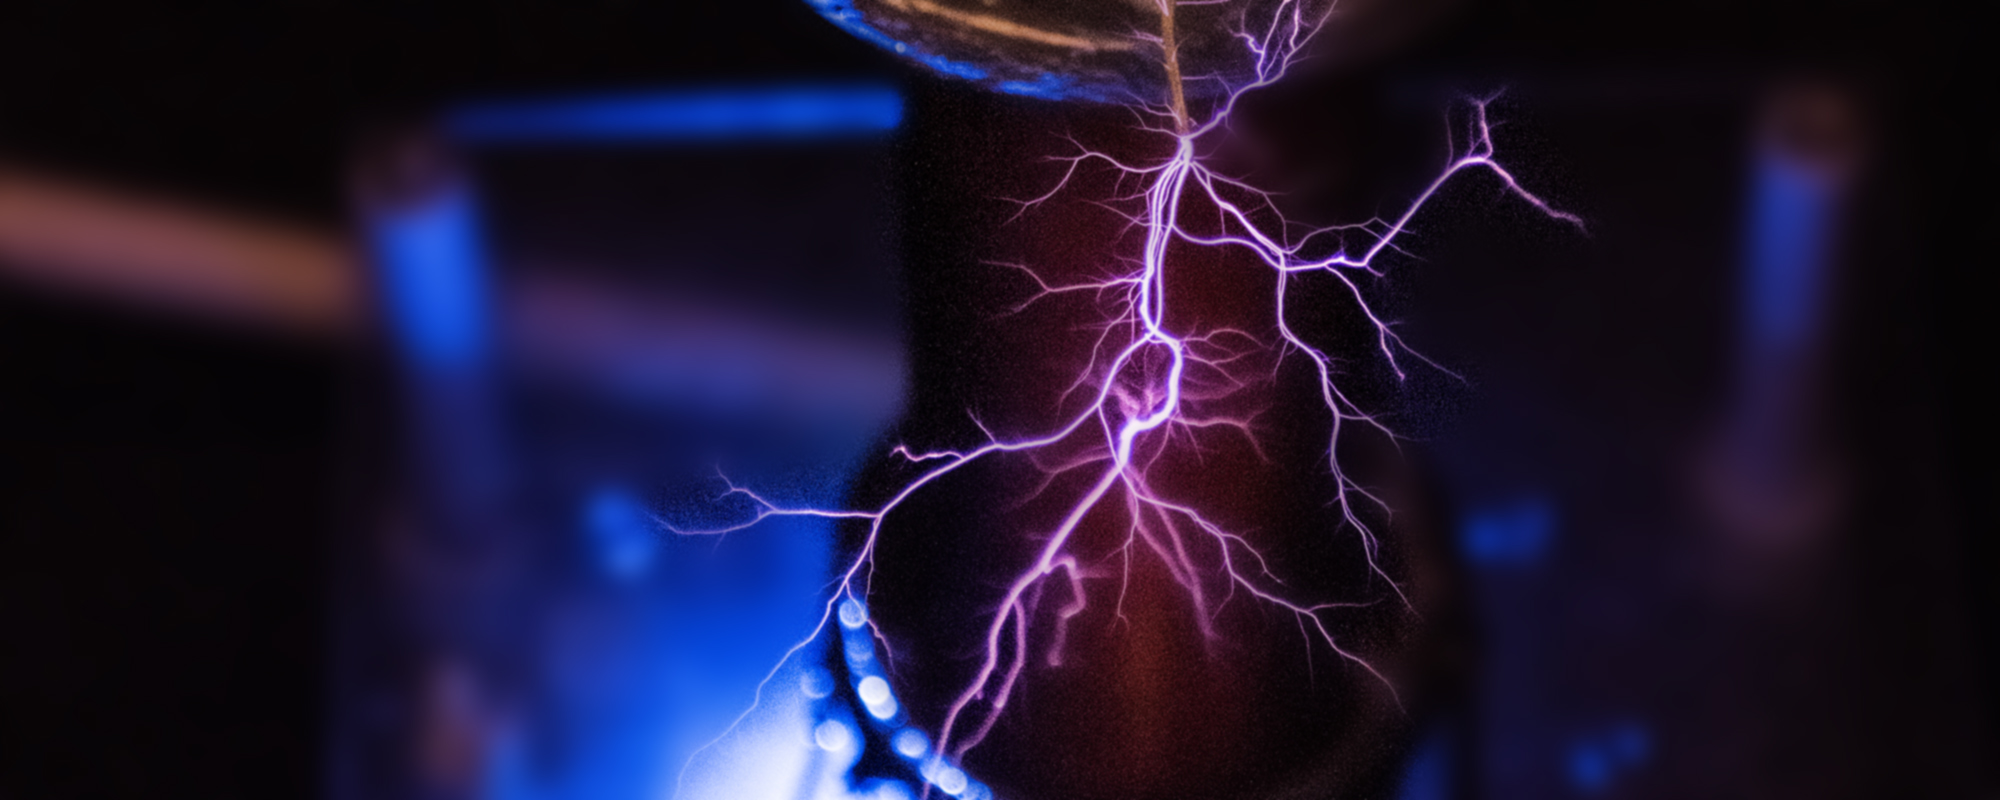 An image of pink electricity coming off of a tesla coil.